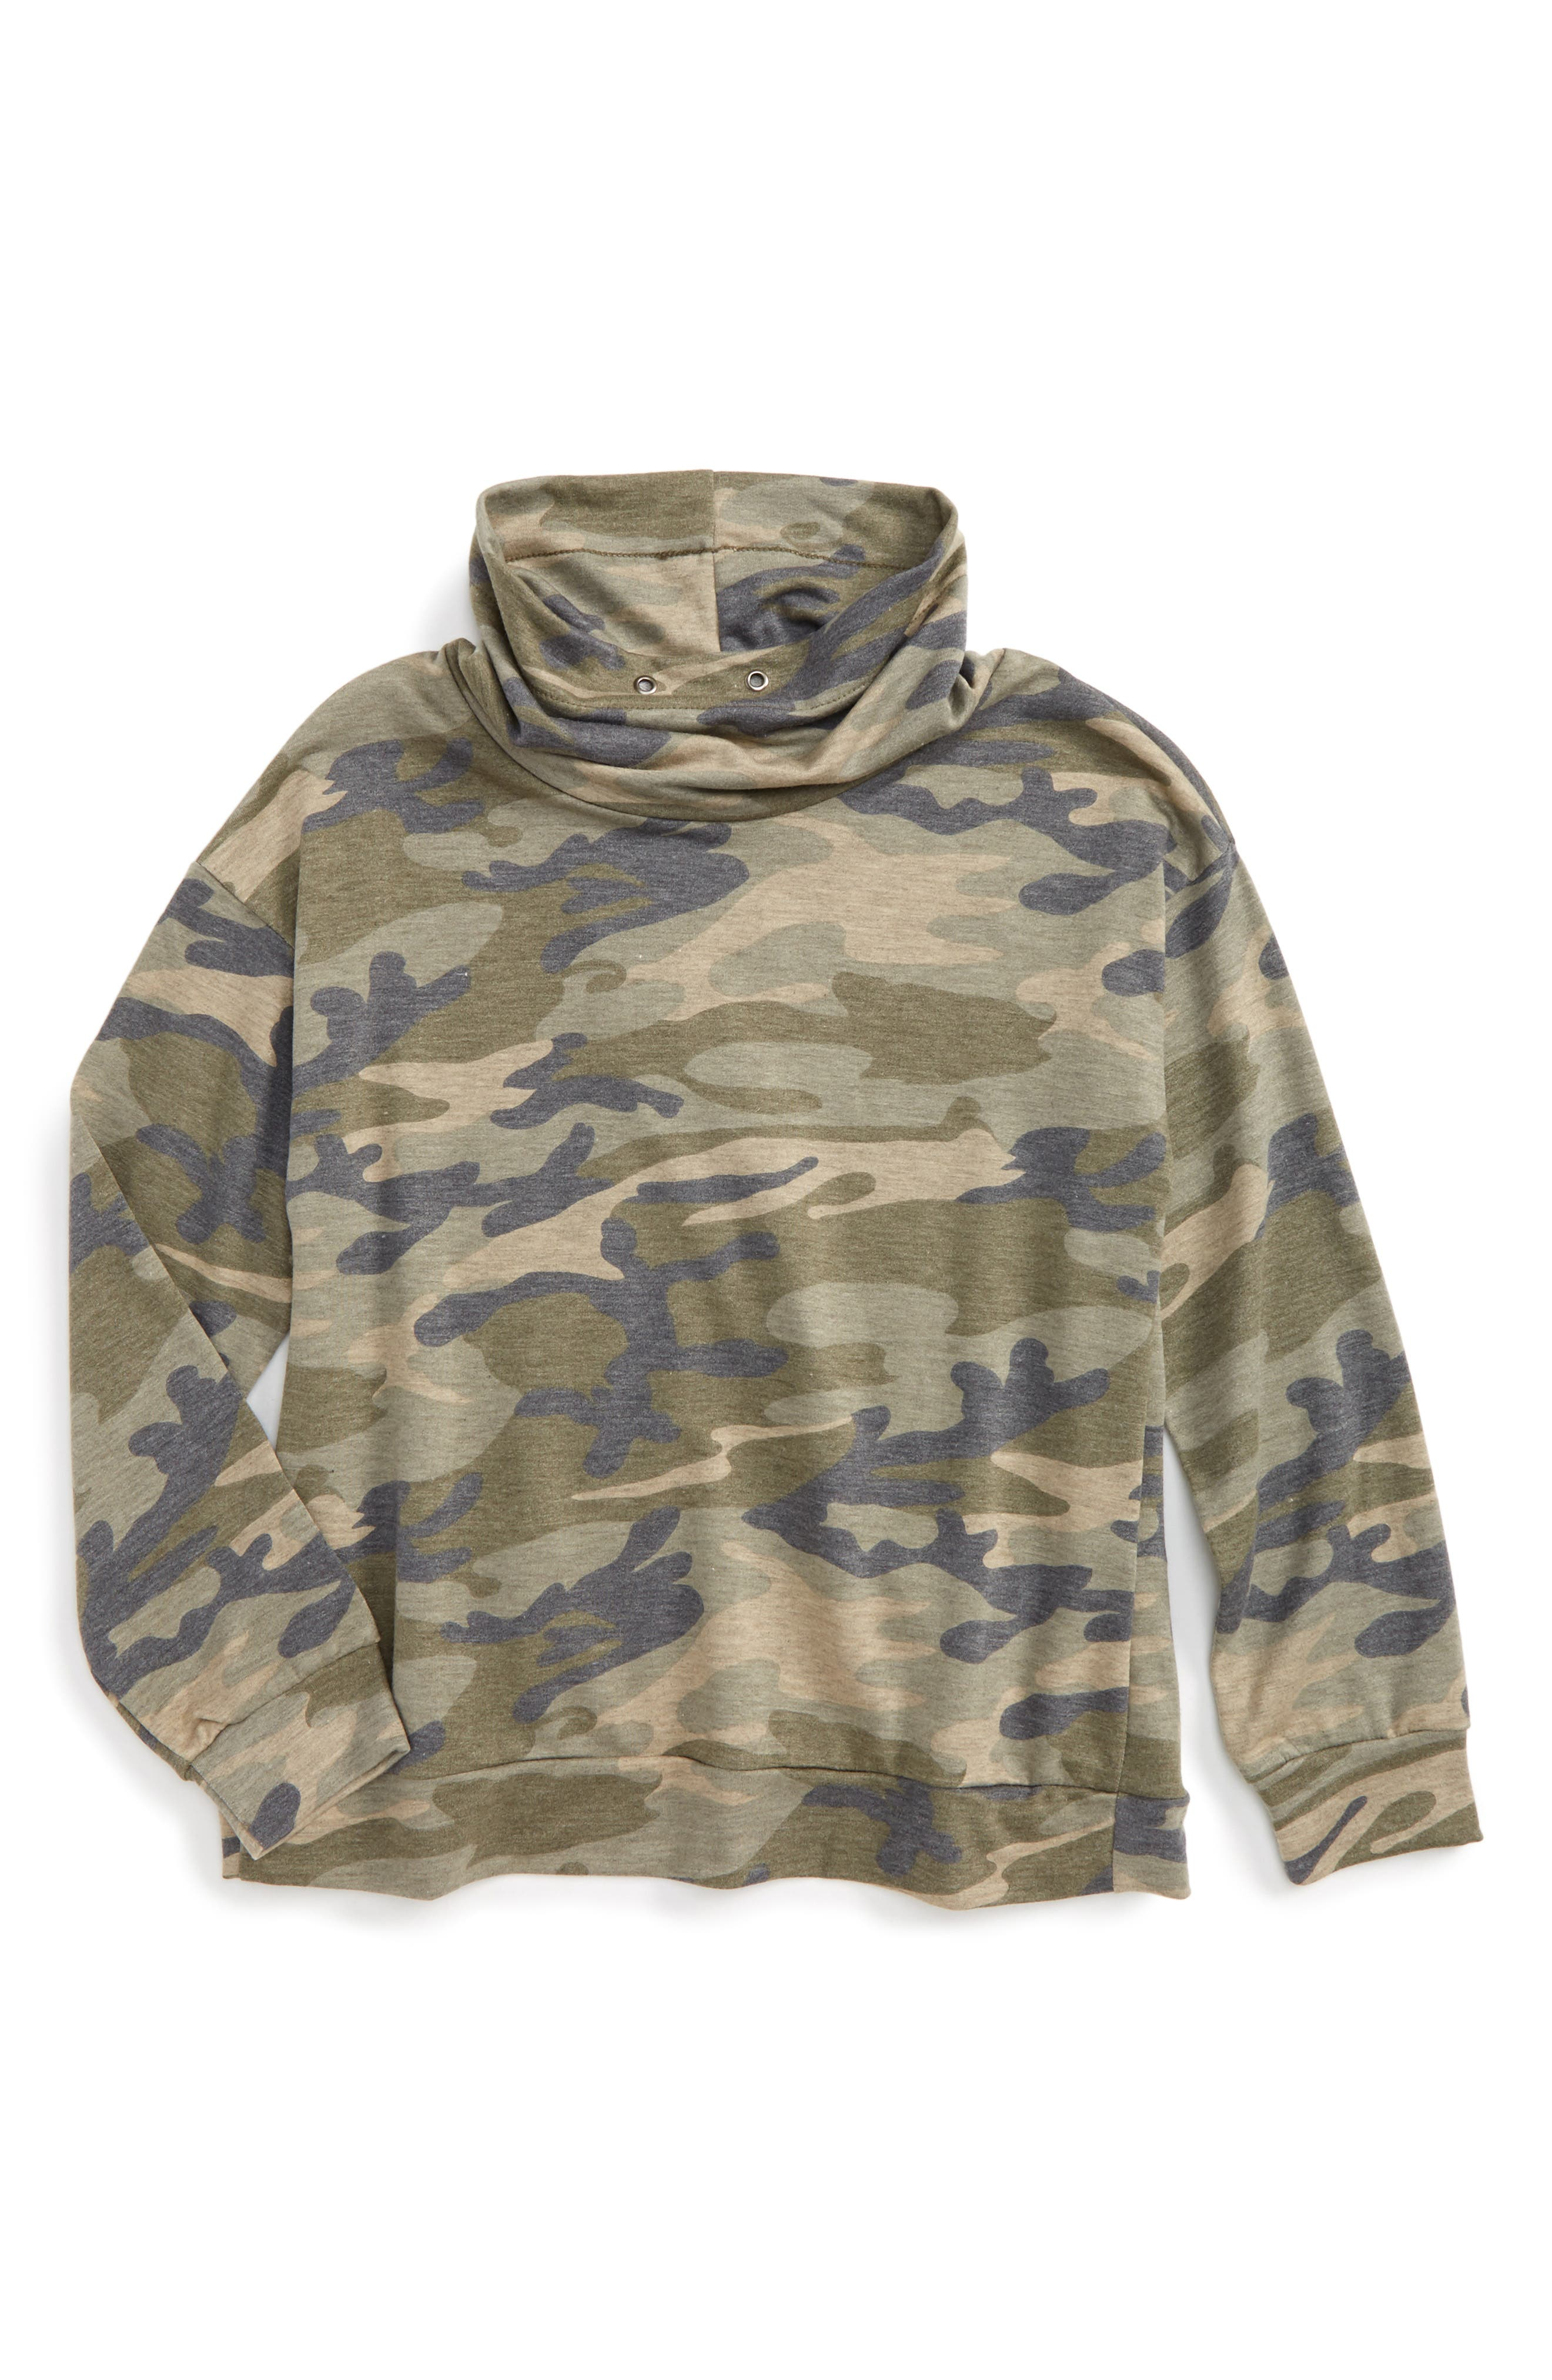 Camo Print Cowl Neck Sweatshirt,                         Main,                         color, 073 Military